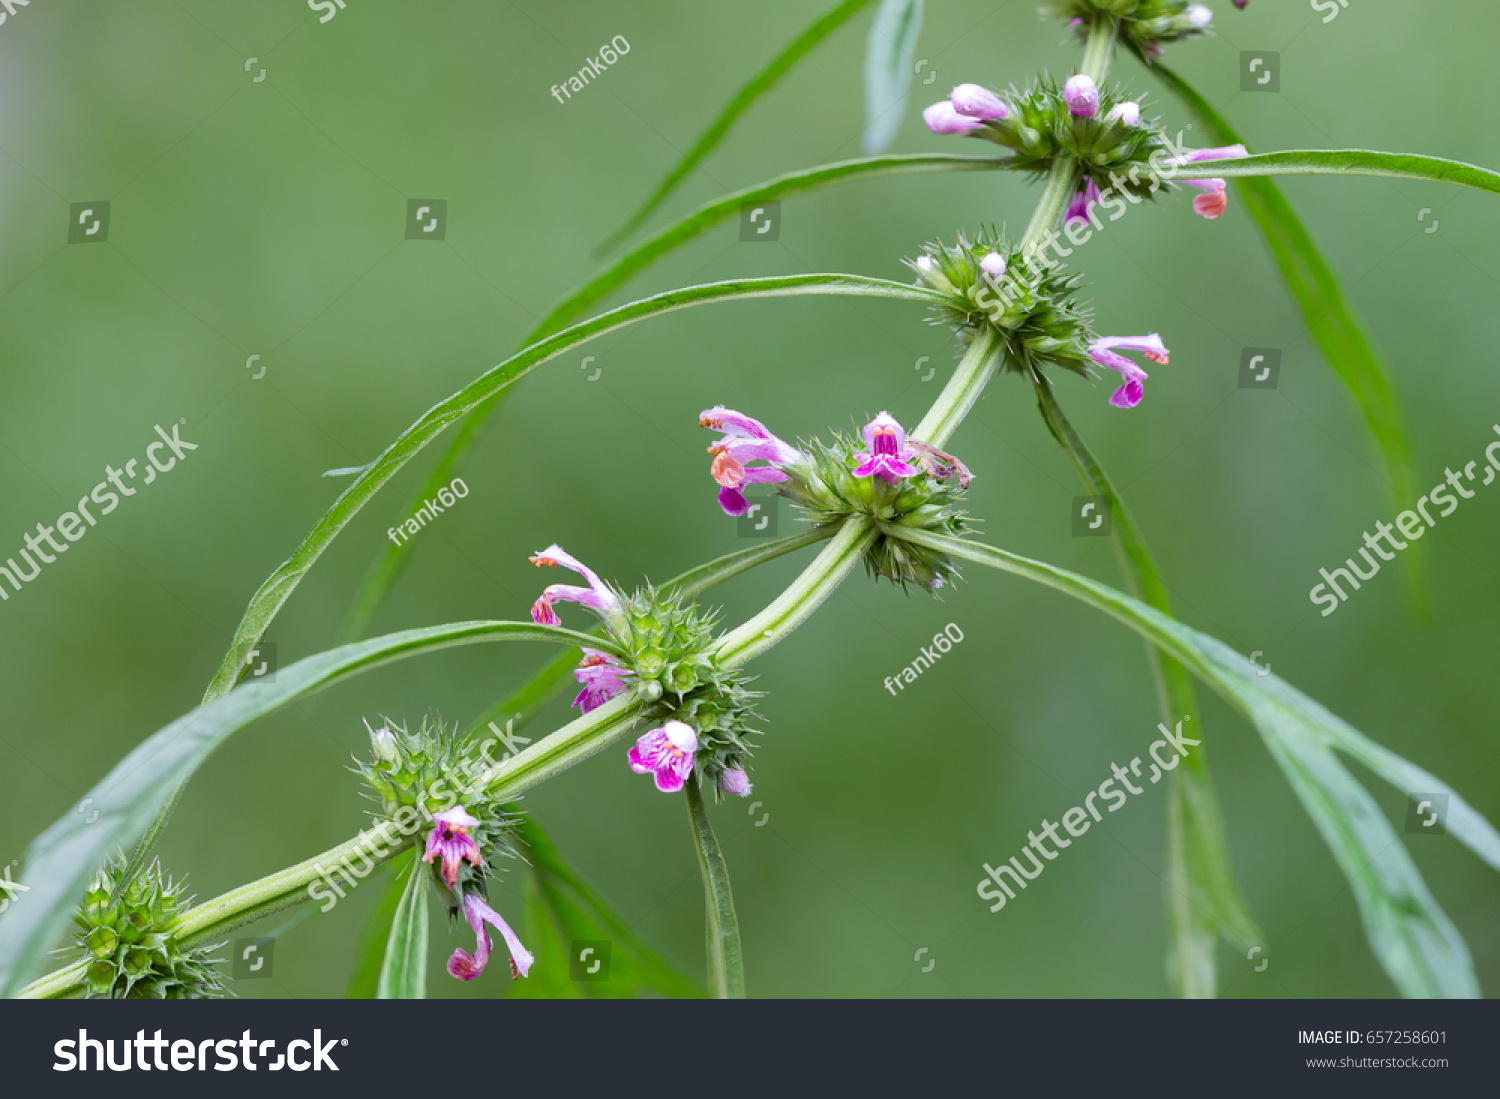 Herb Medicinal Plants Commonly Called Honeyweed Nature Stock Image 657258601